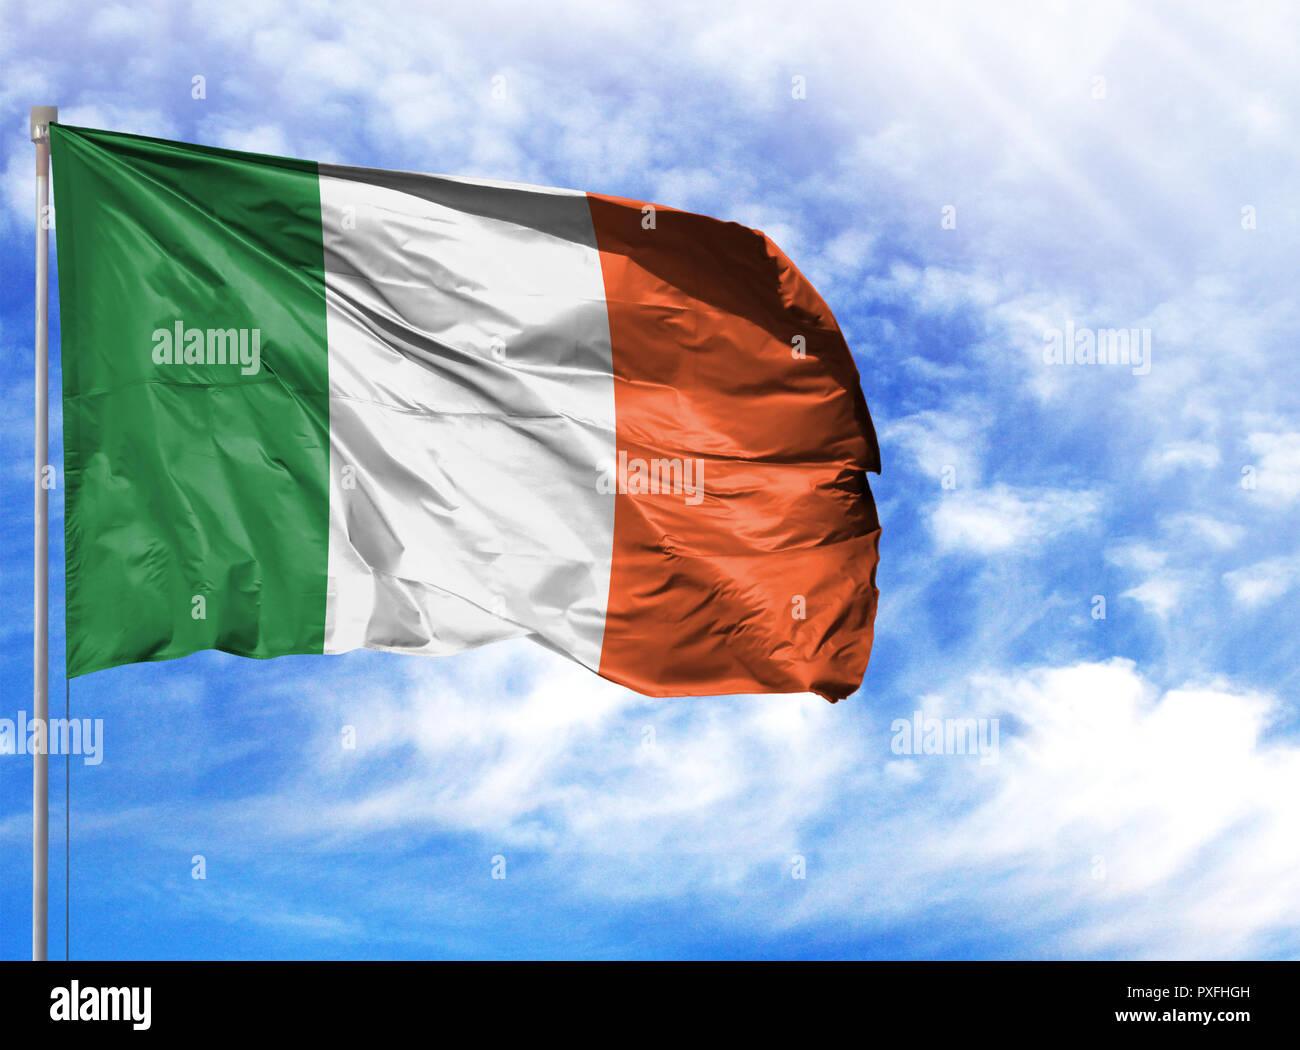 National flag of Ireland on a flagpole in front of blue sky. - Stock Image